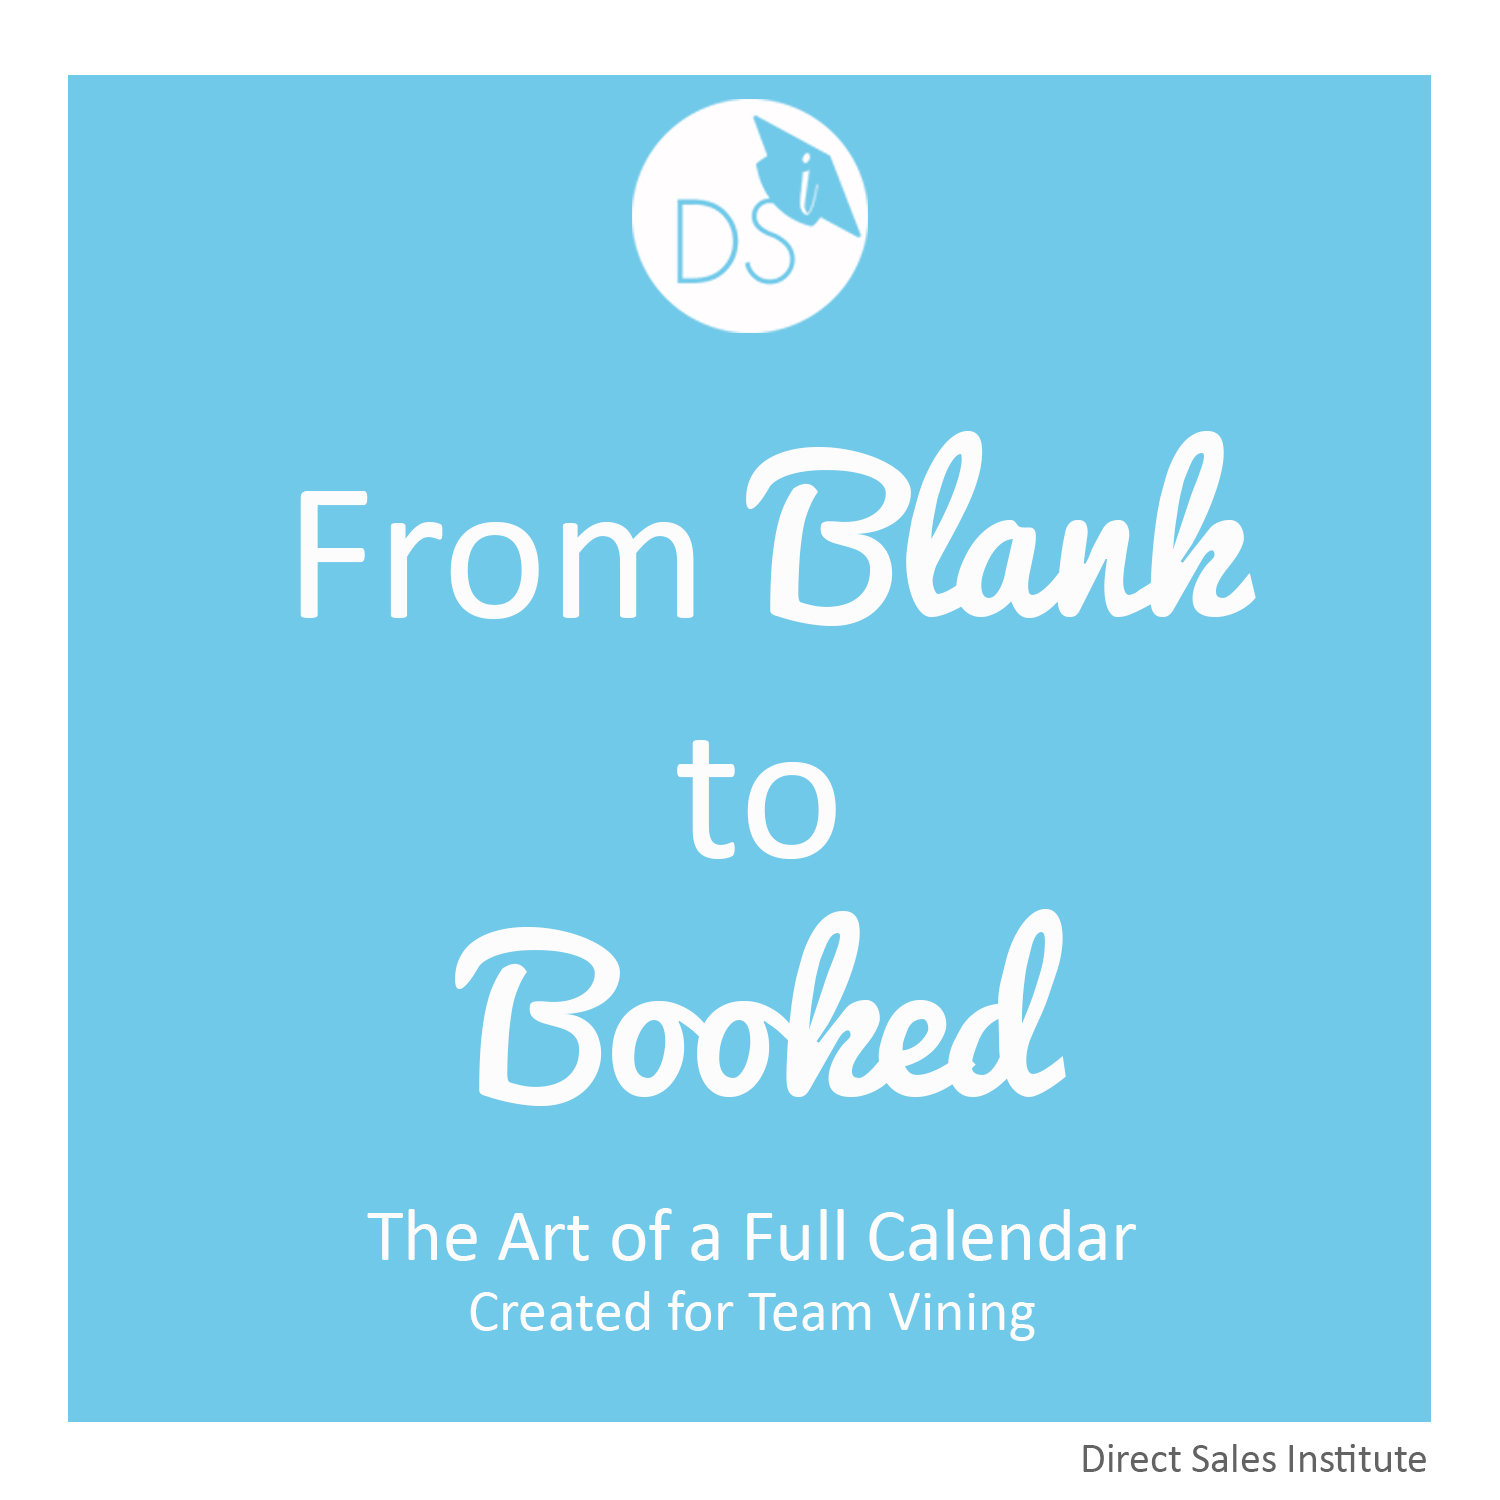 From Blank to Booked